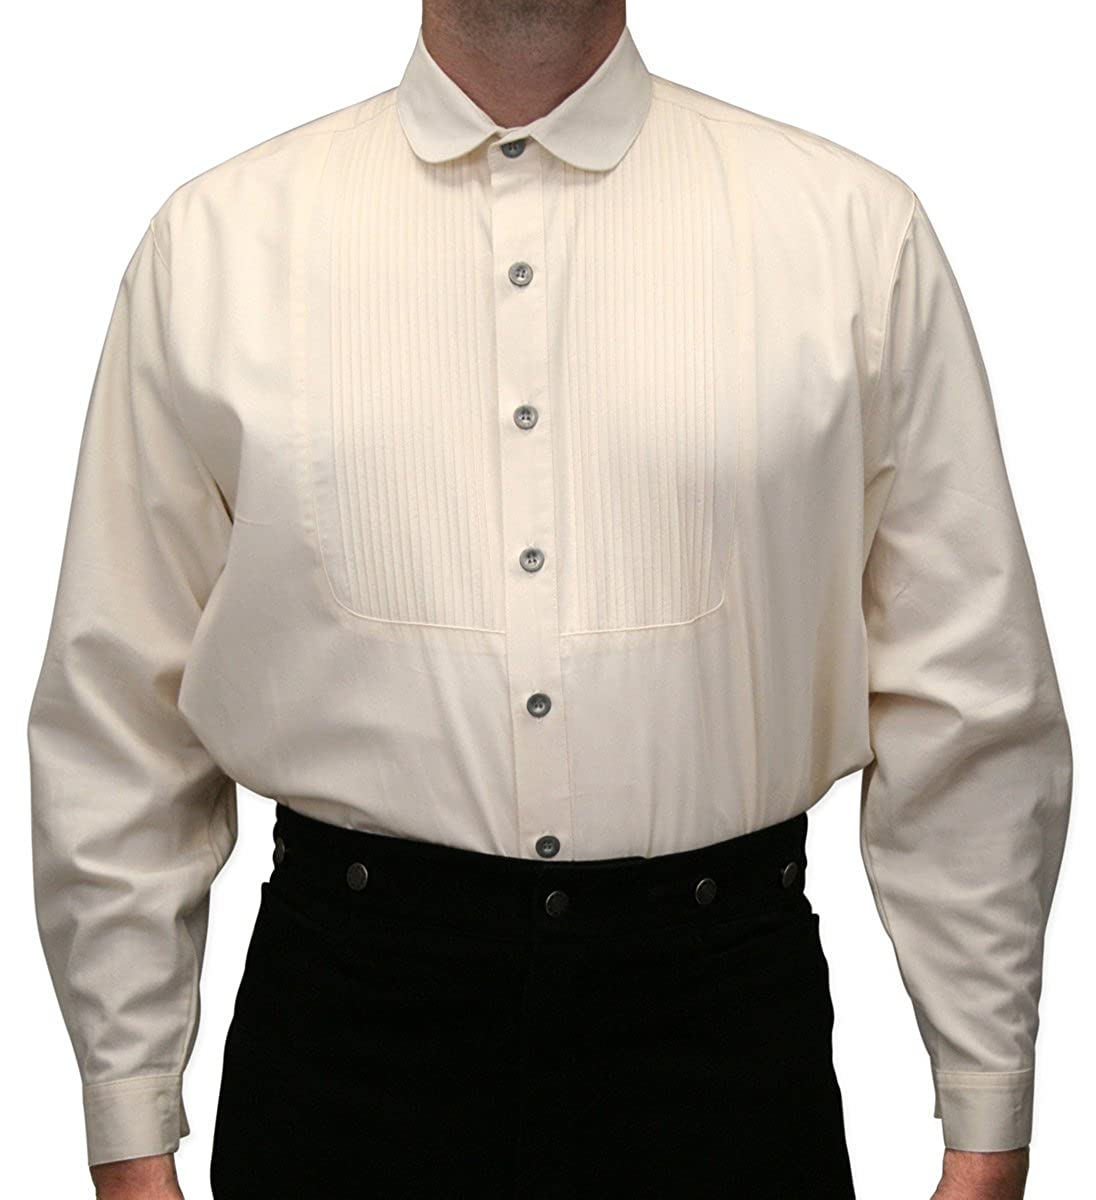 Steampunk Men's Shirts Historical Emporium Mens Pleated Edwardian Round Club Collar Dress Shirt $59.95 AT vintagedancer.com